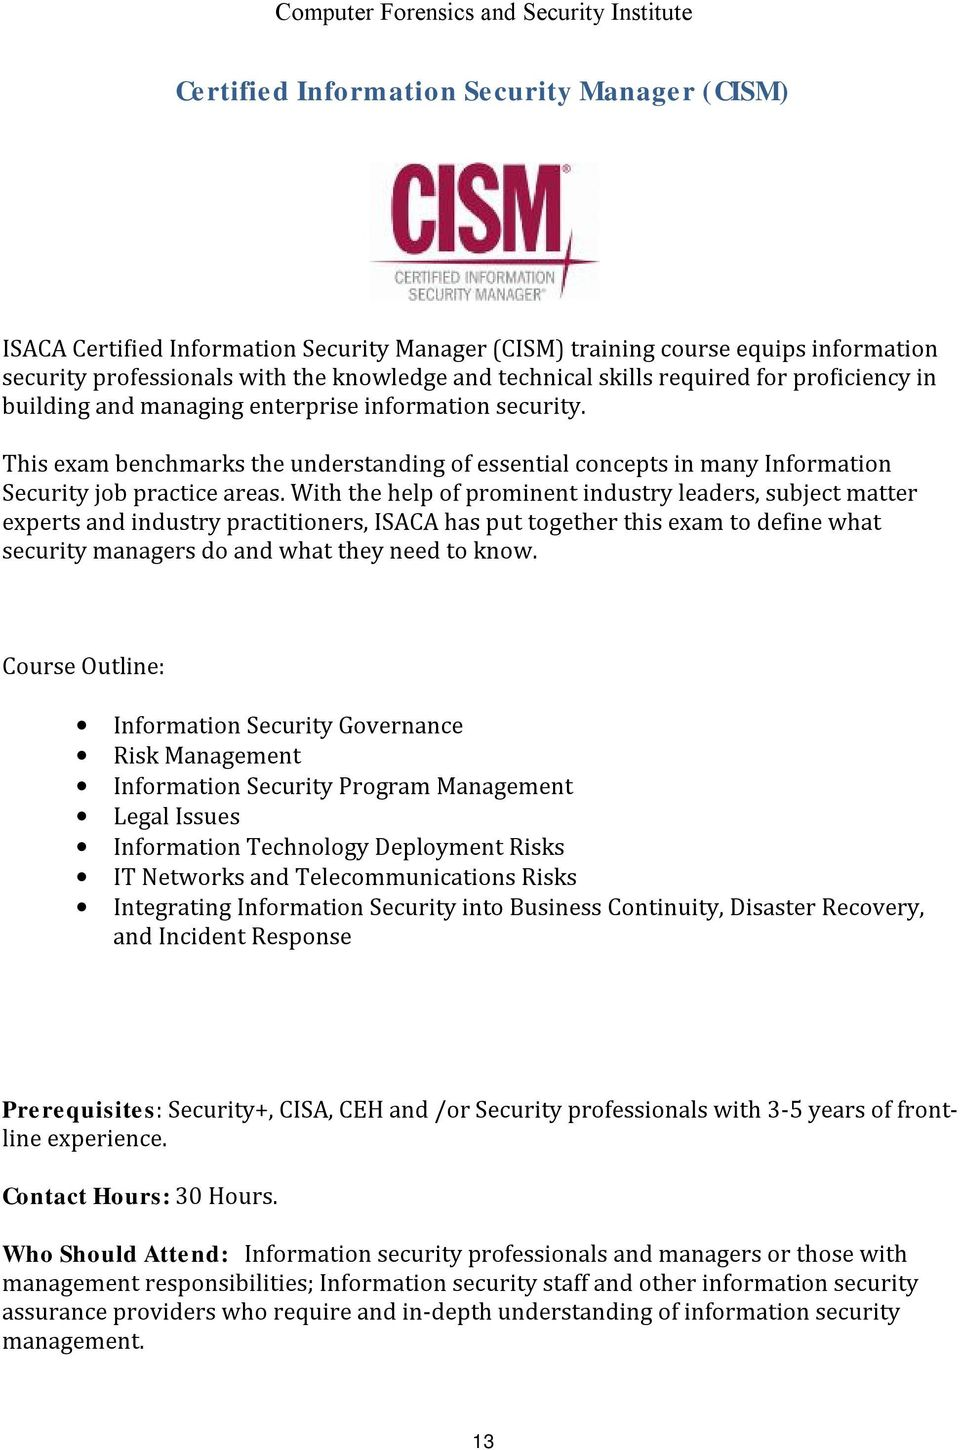 With the help of prominent industry leaders, subject matter experts and industry practitioners, ISACA has put together this exam to define what security managers do and what they need to know.